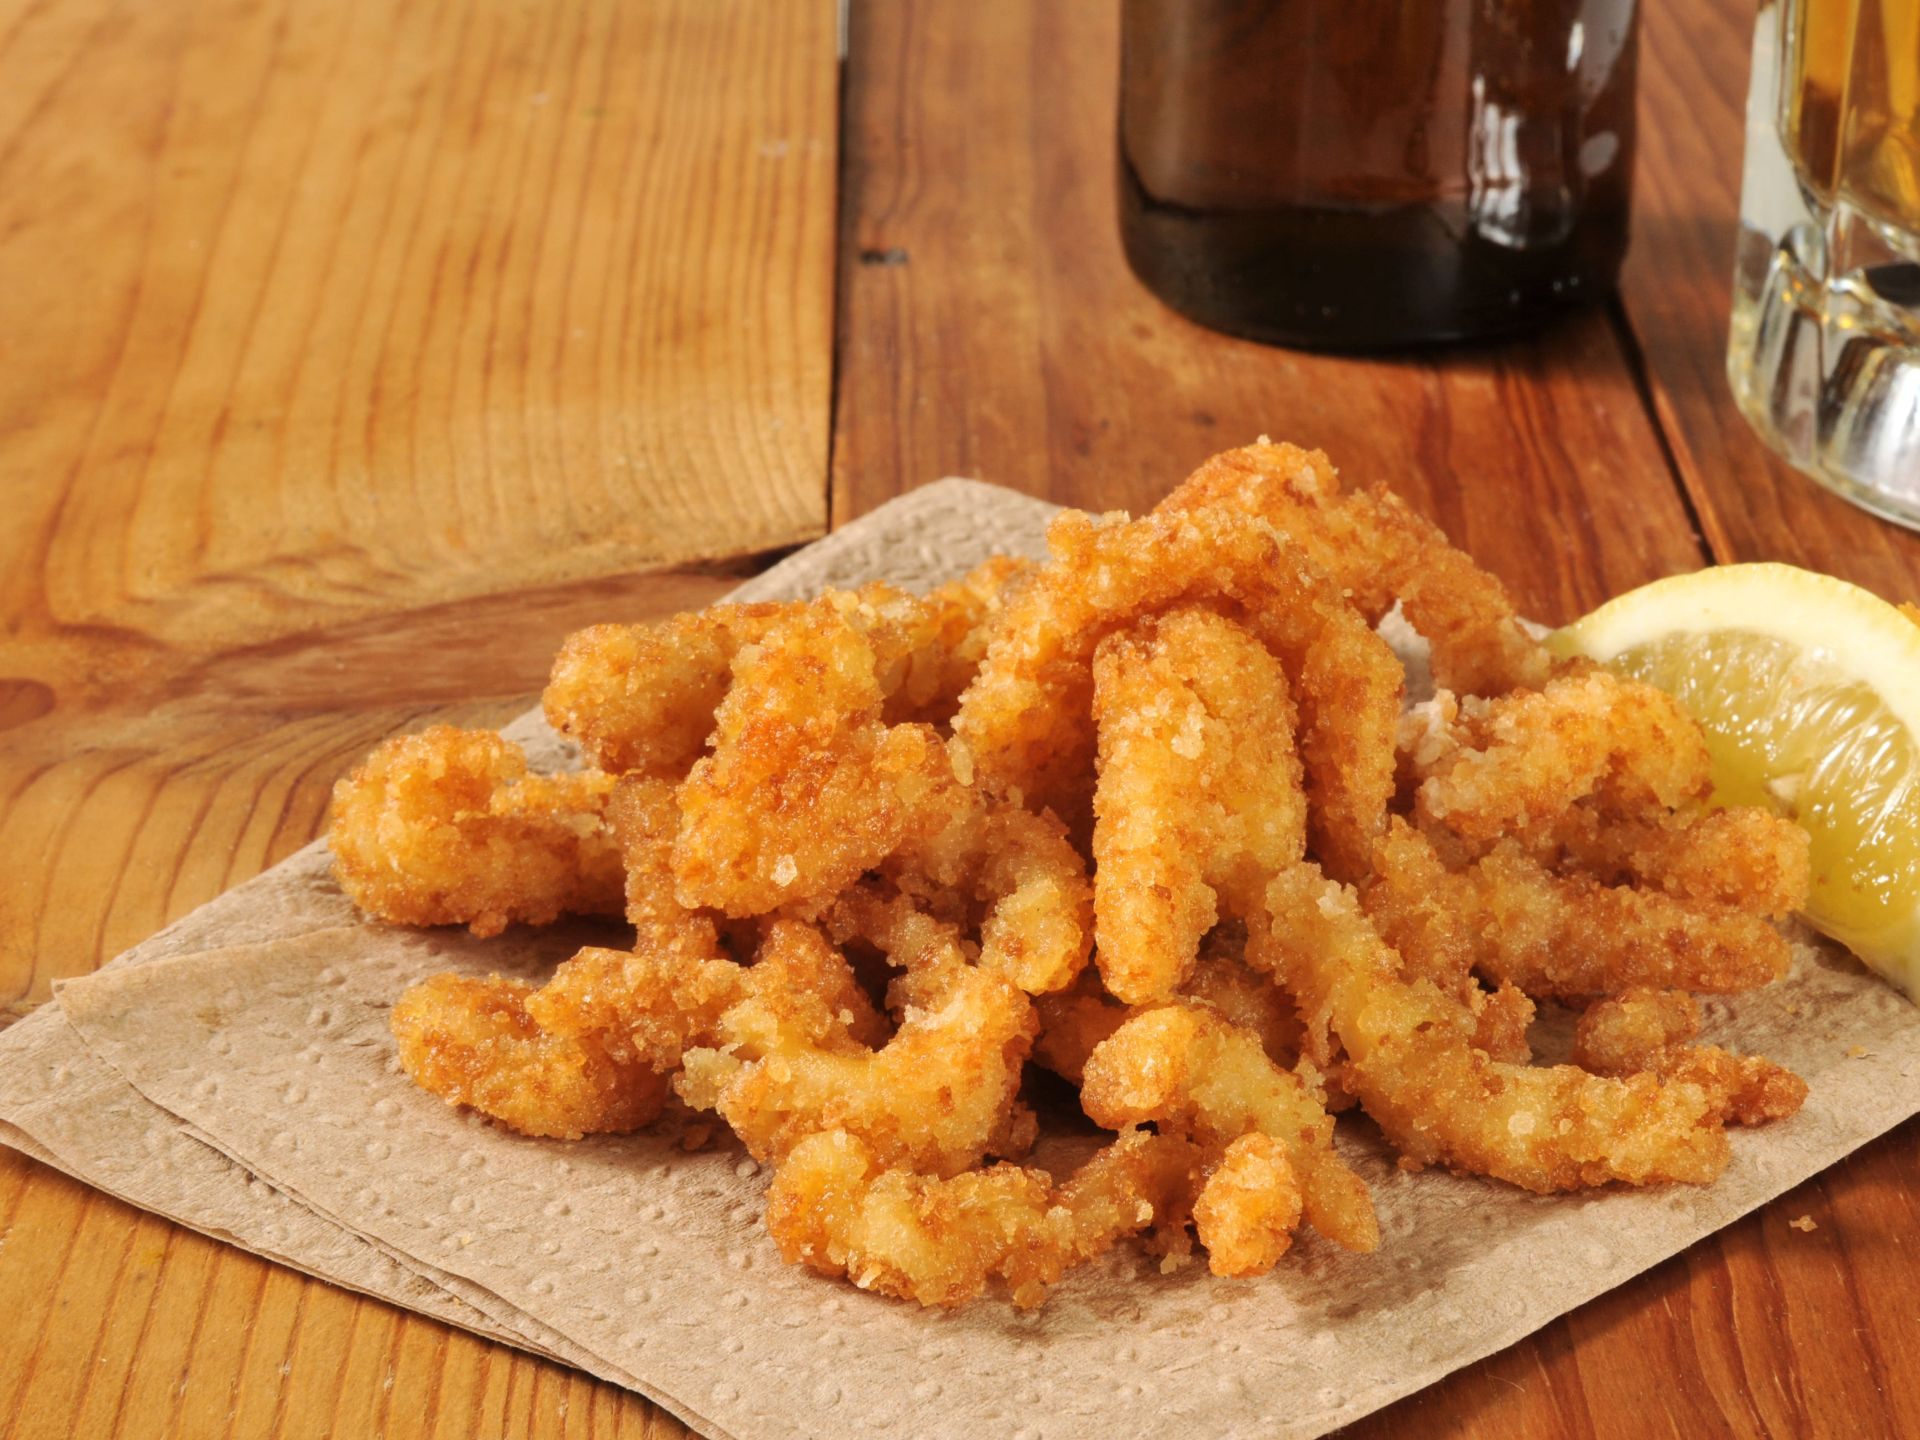 Fried clam strips on brown paper with a lemon slice and two glass bottles in the background on a wooden table